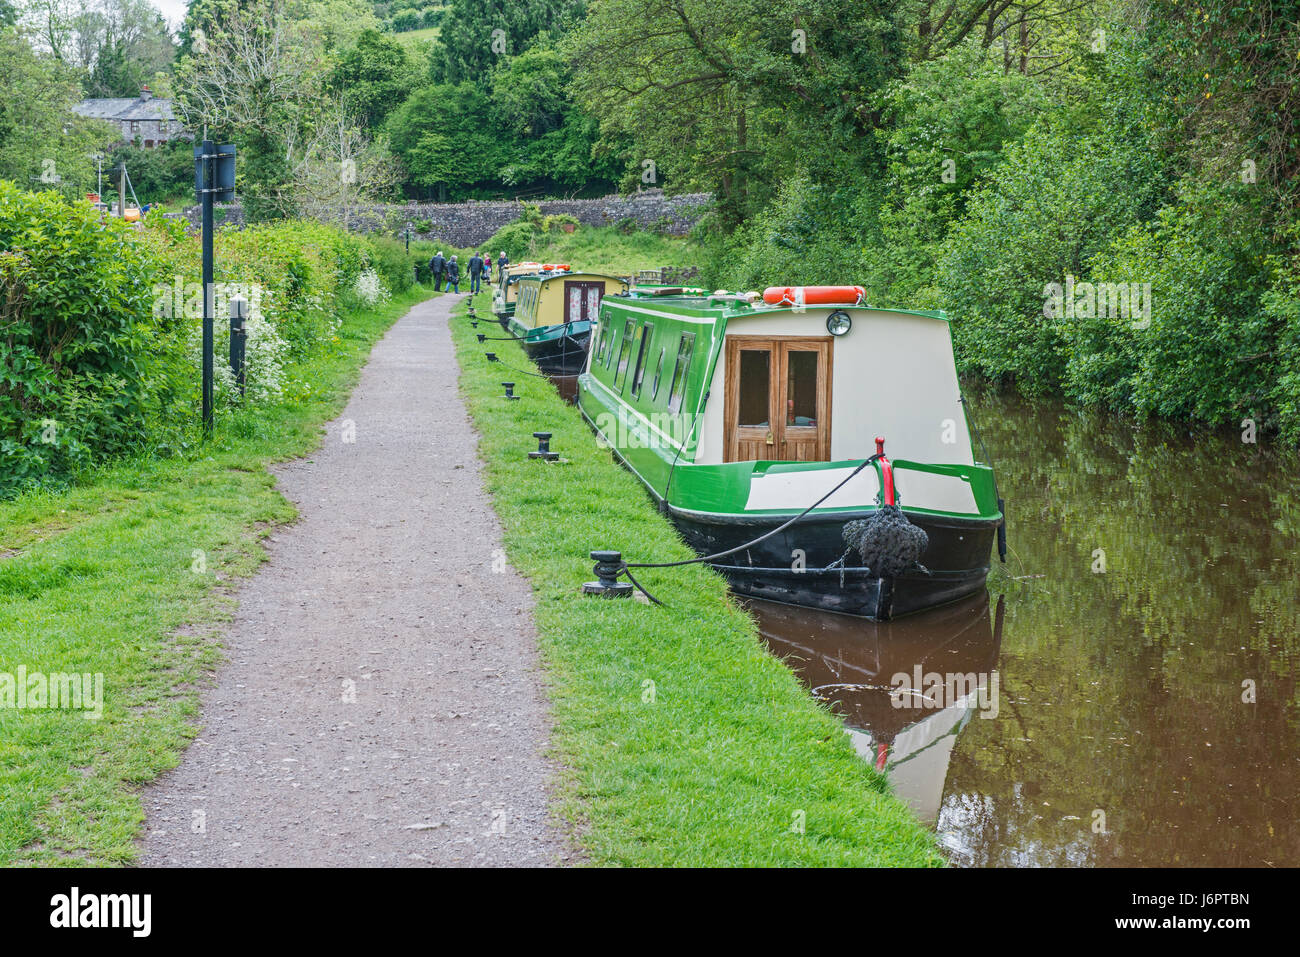 Narrowboats on the Brecon Monmouth Canal at Talybont on Usk, Brecon Beacons - Stock Image